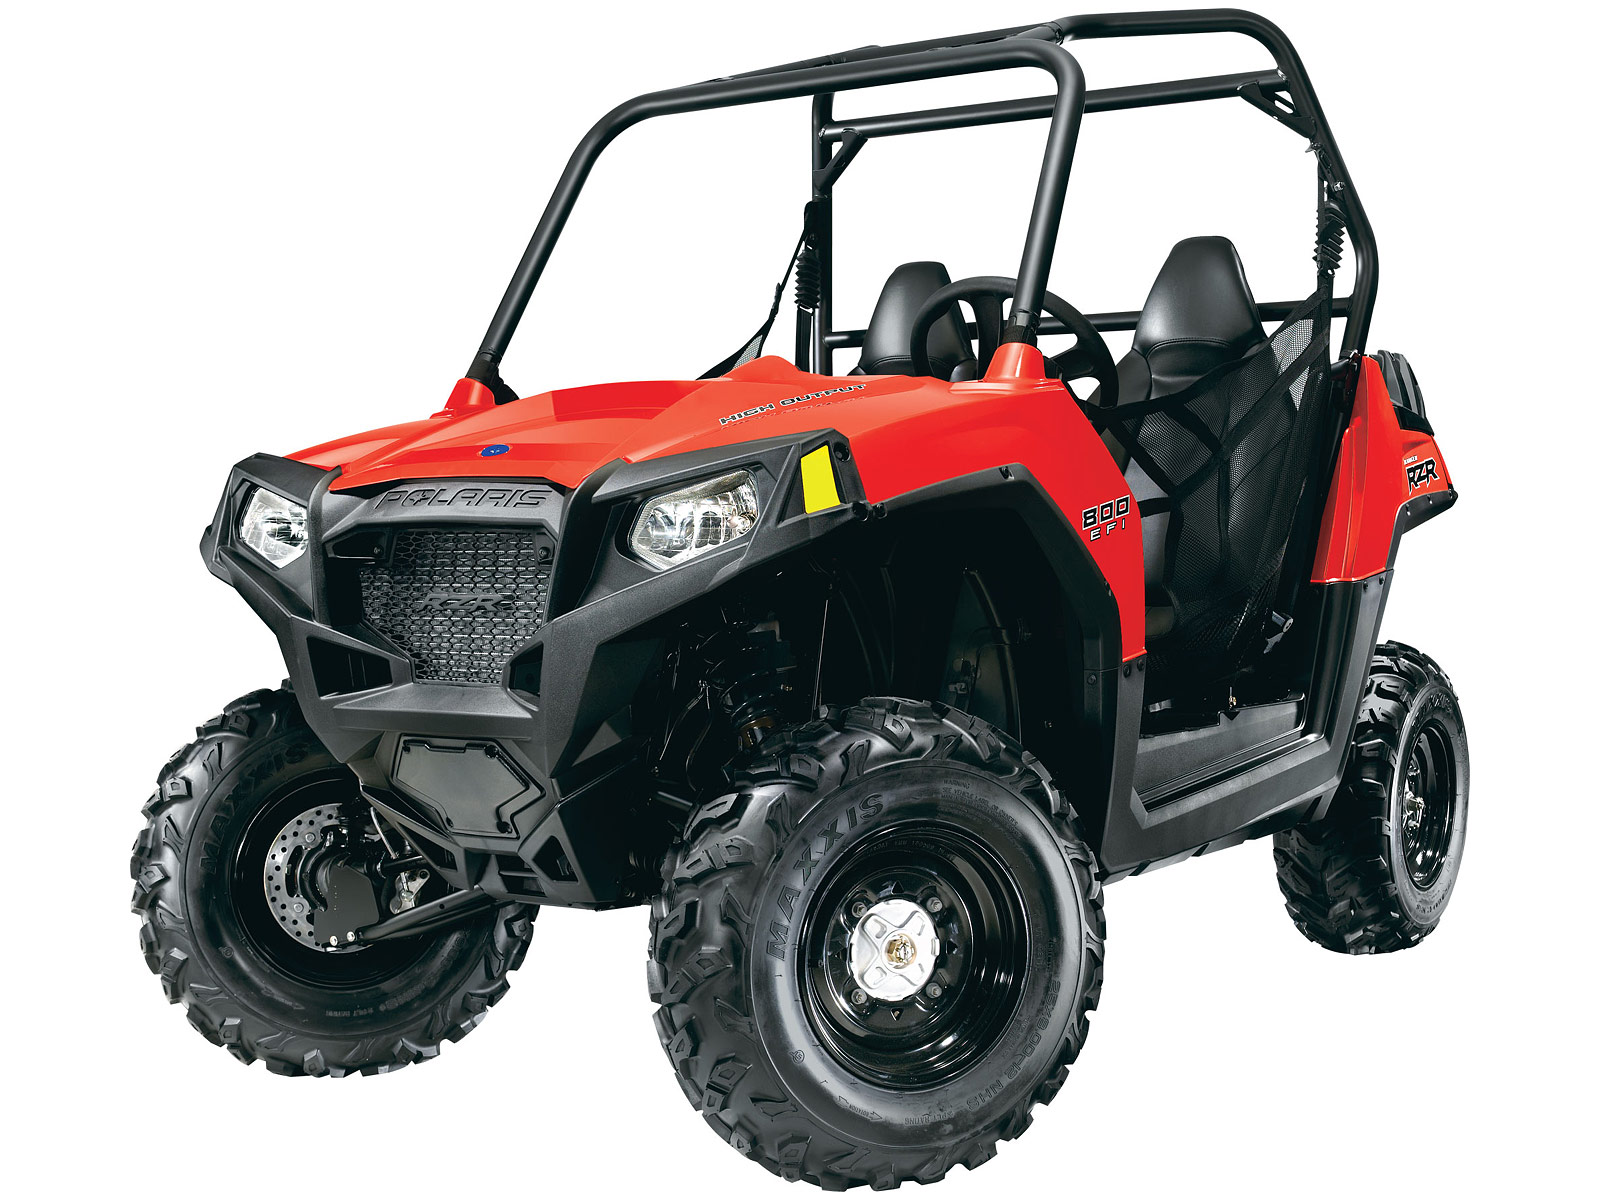 small resolution of 2012 polaris ranger rzr 800 atv pictures 1